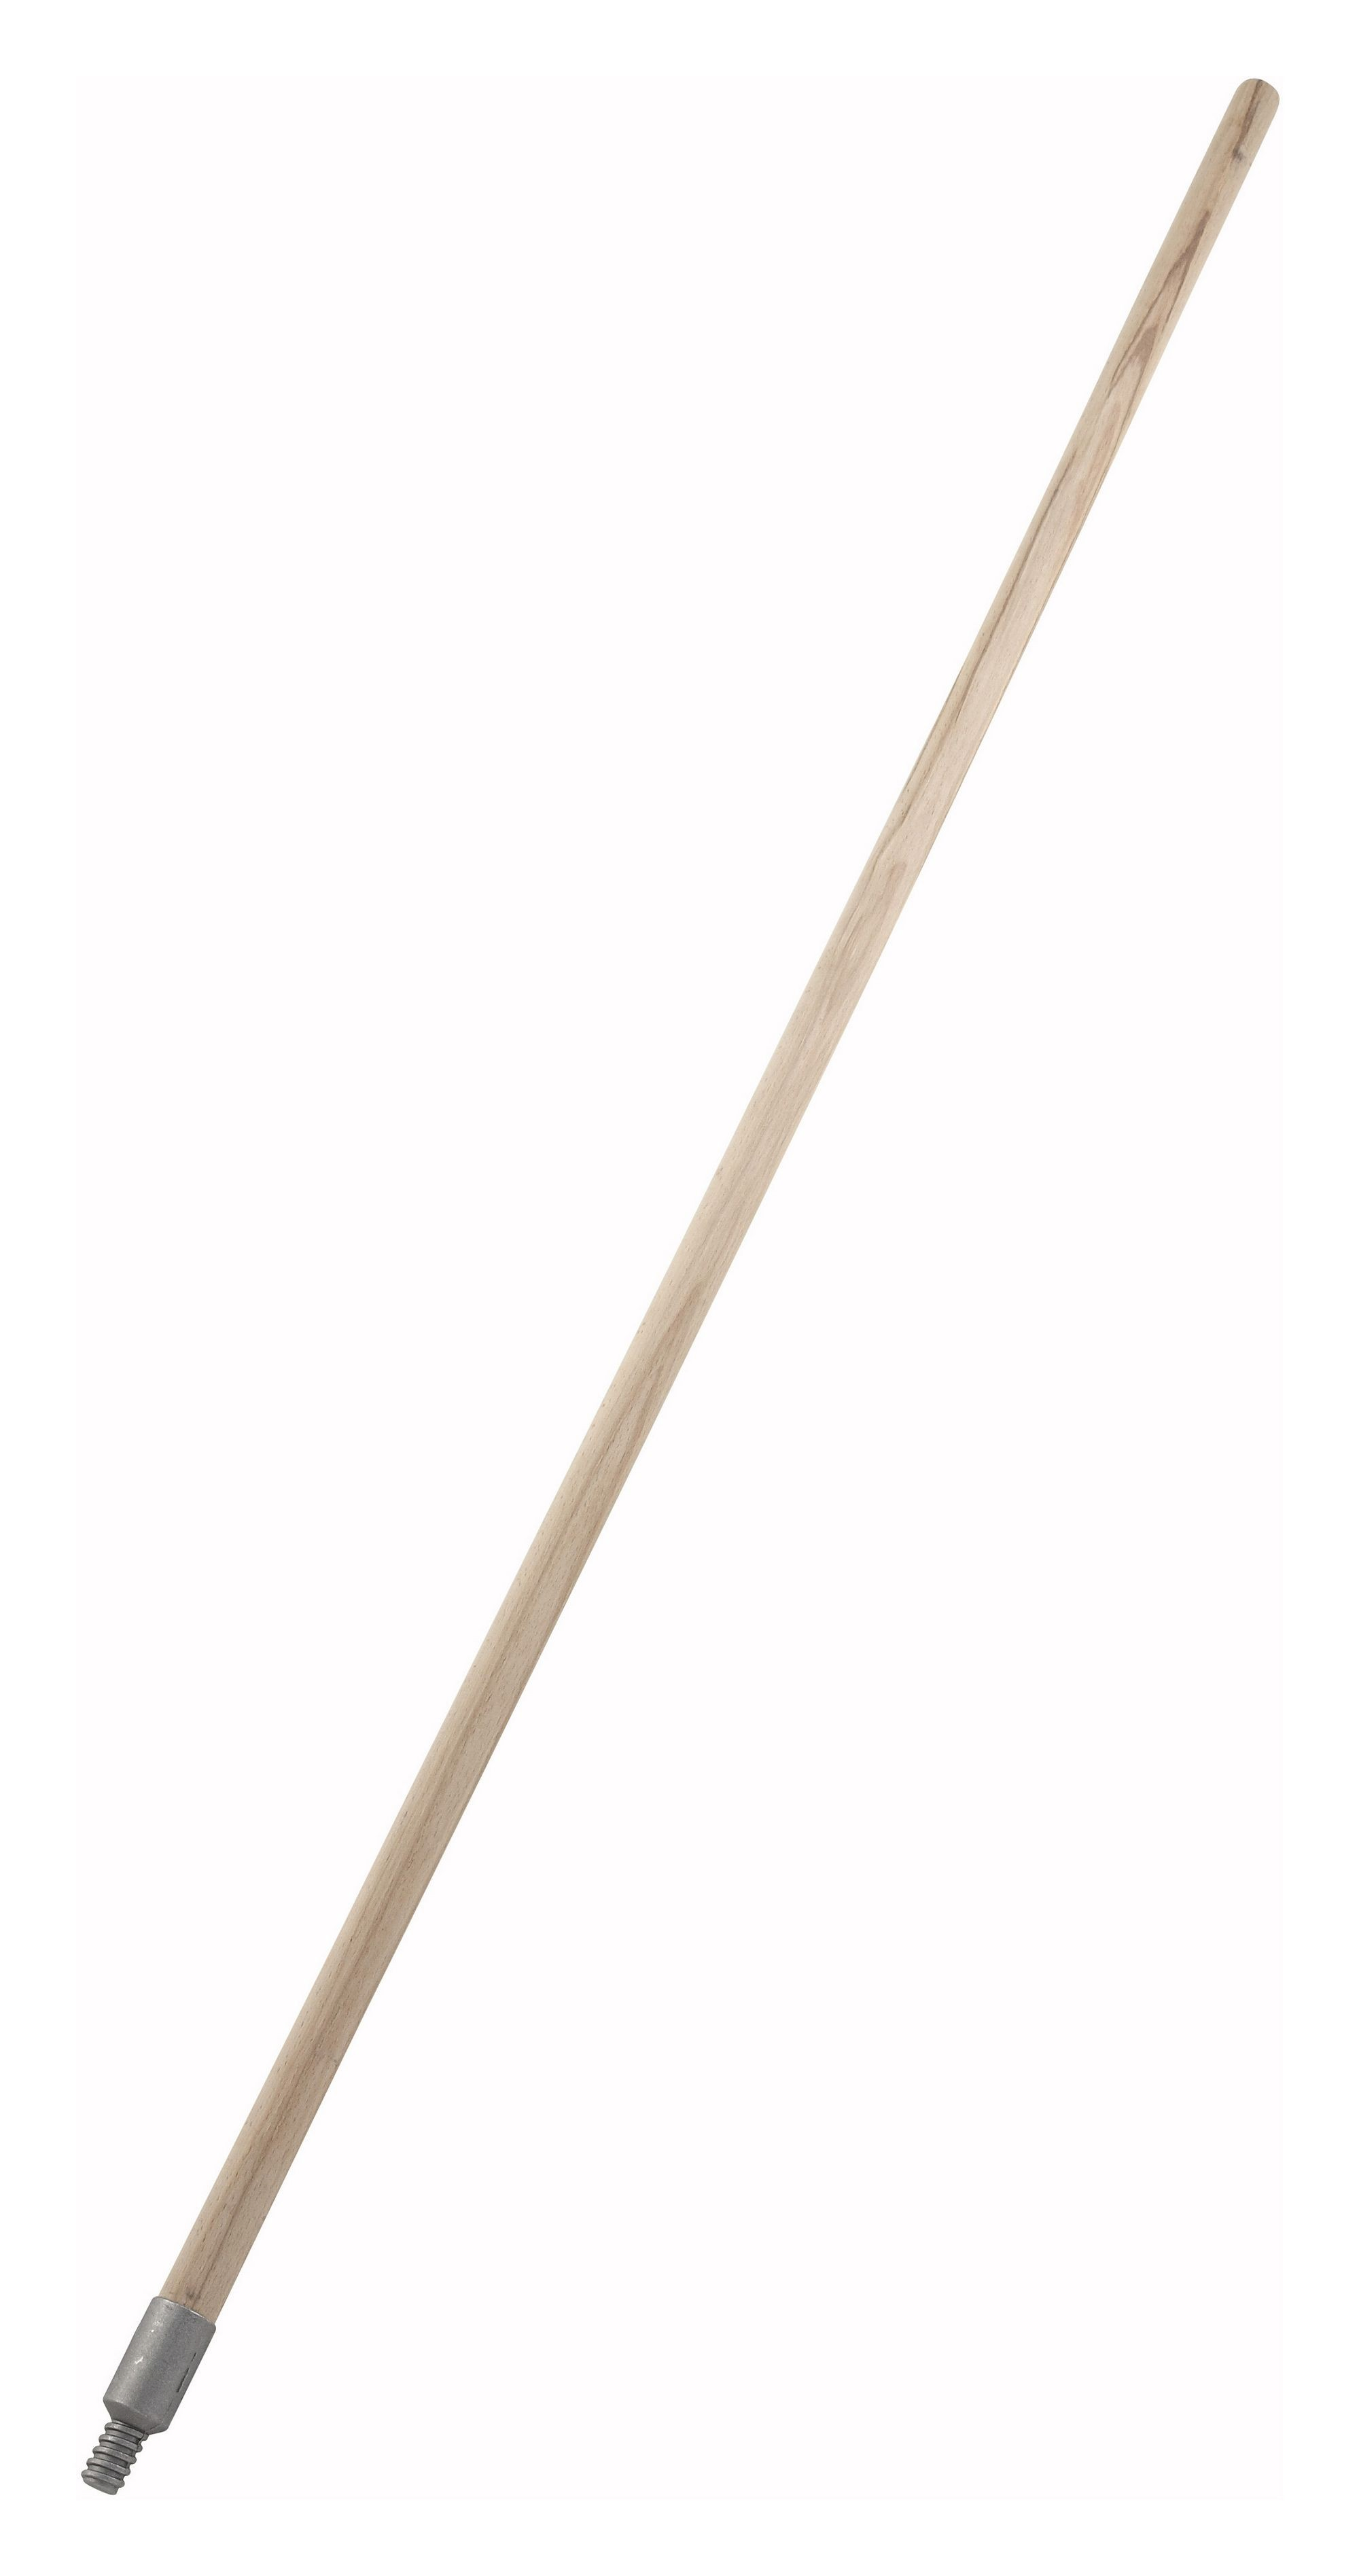 """Winco BR-60W Wood Handle 60"""" for Pizza Brush BR-10S/BR-10"""